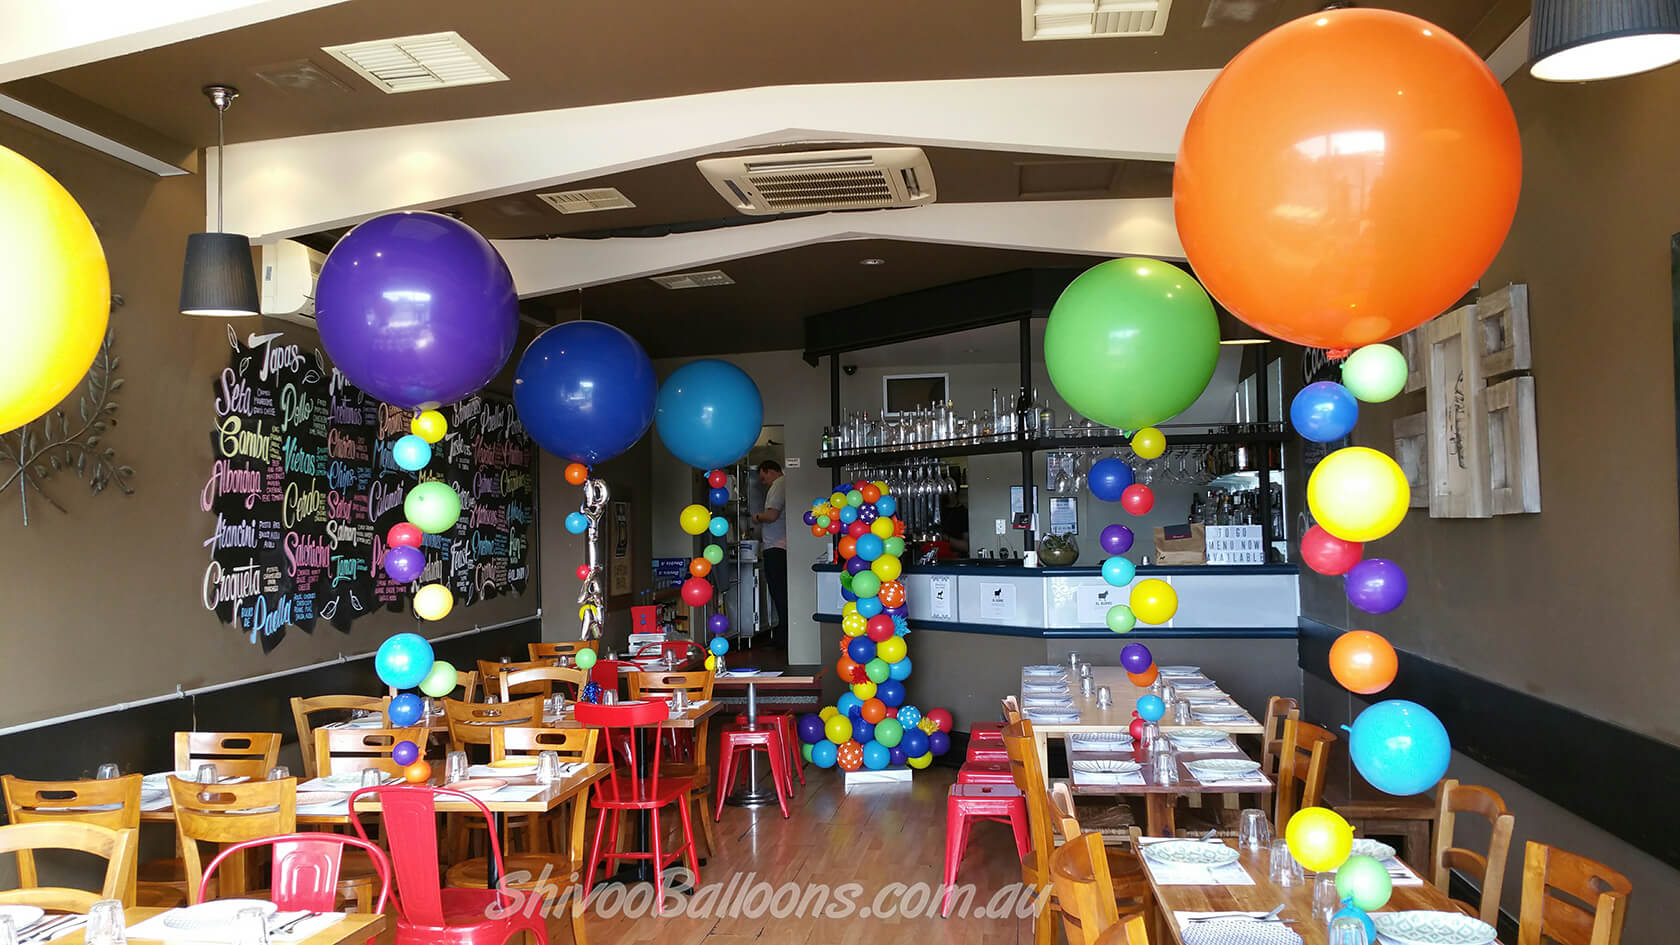 See Our Events! - image CE-39 on https://shivooballoons.com.au